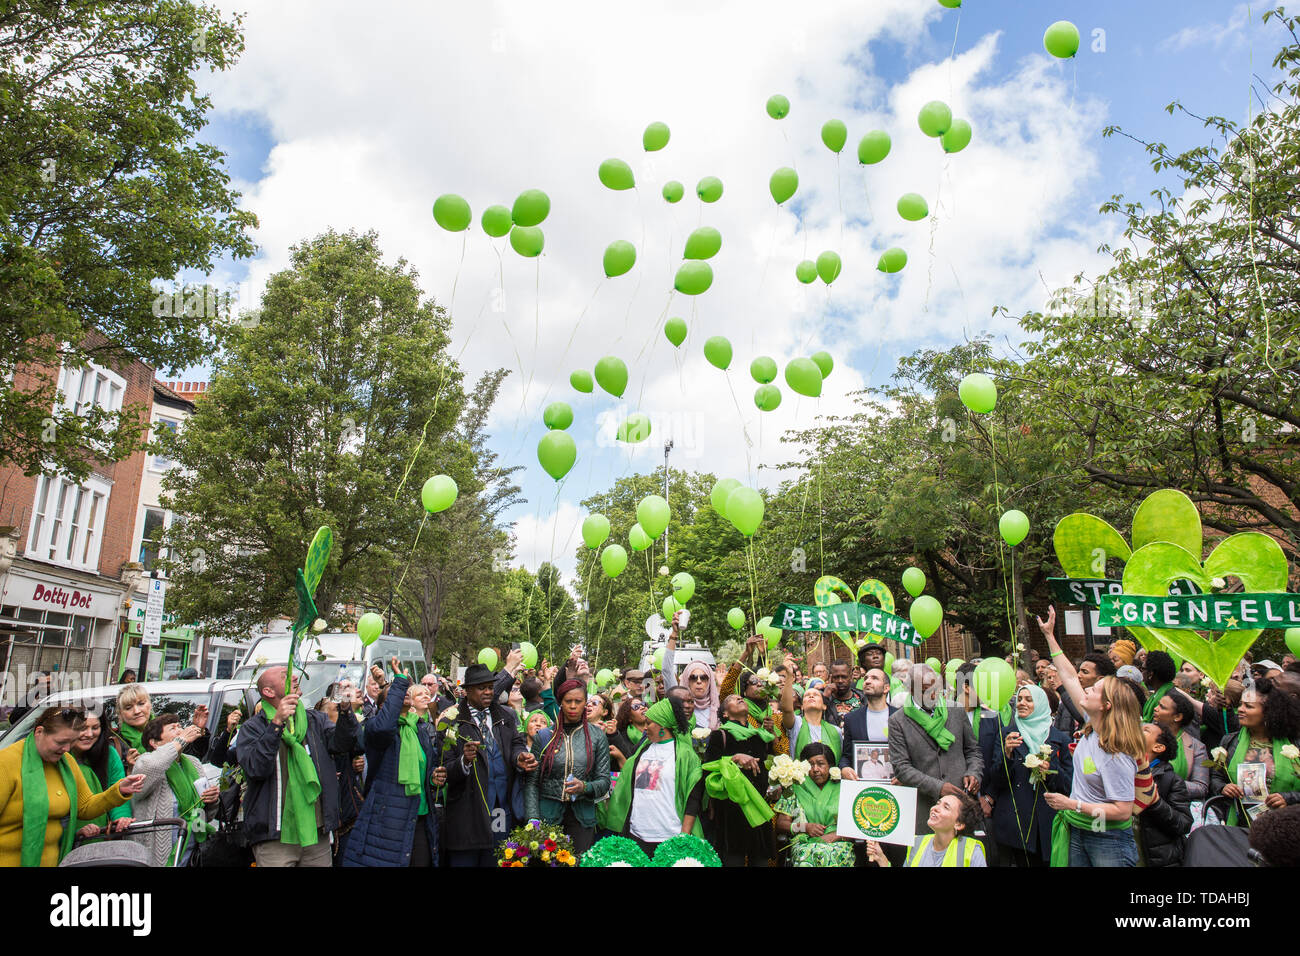 London, UK. 14 June, 2019. Family members release green balloons following a memorial service at St Helen's Church to mark the second anniversary of the Grenfell Tower fire on 14th June 2017 in which at least 72 people died and over 70 were injured. Credit: Mark Kerrison/Alamy Live News - Stock Image